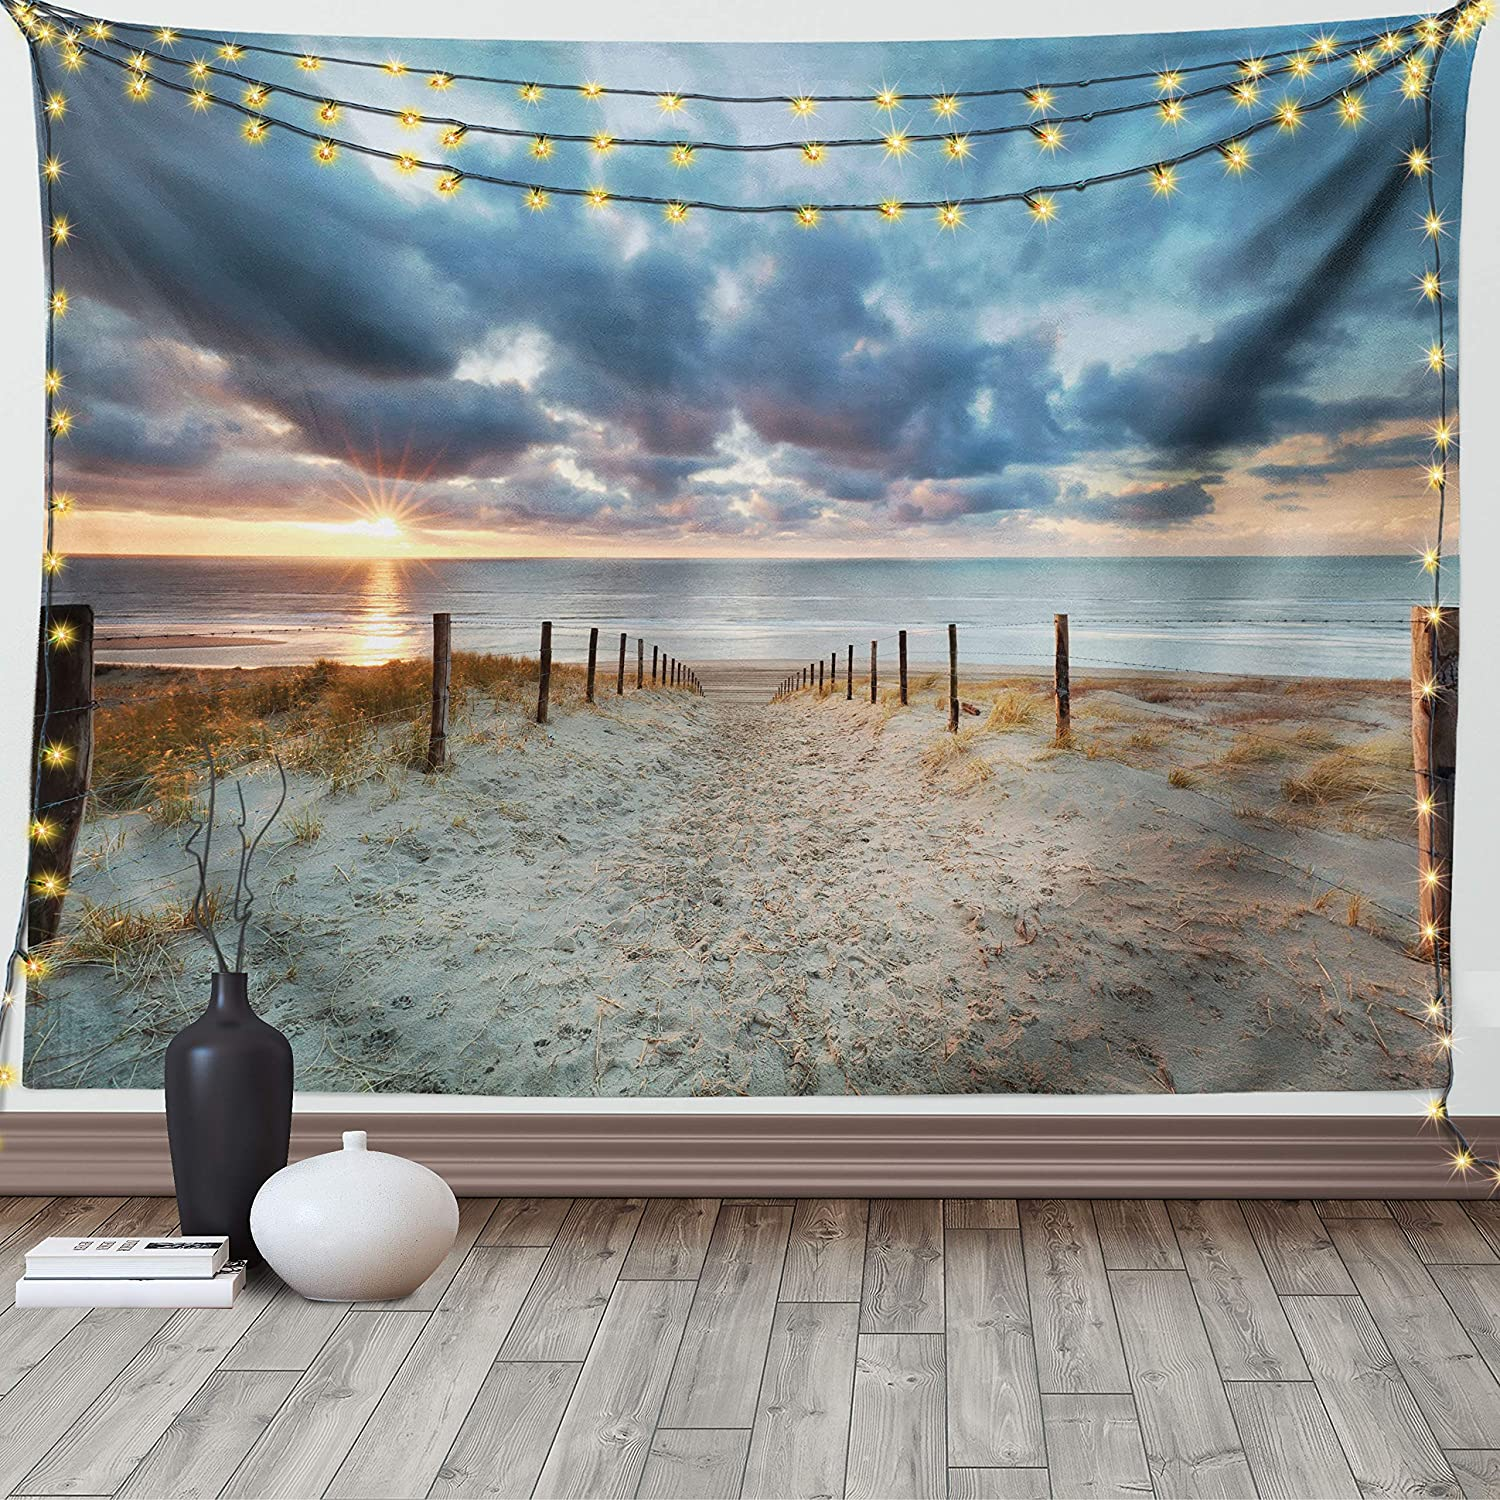 Cheap mail order specialty store Ambesonne Beach Tapestry Recommendation Seaside North Walking Holland Netherla